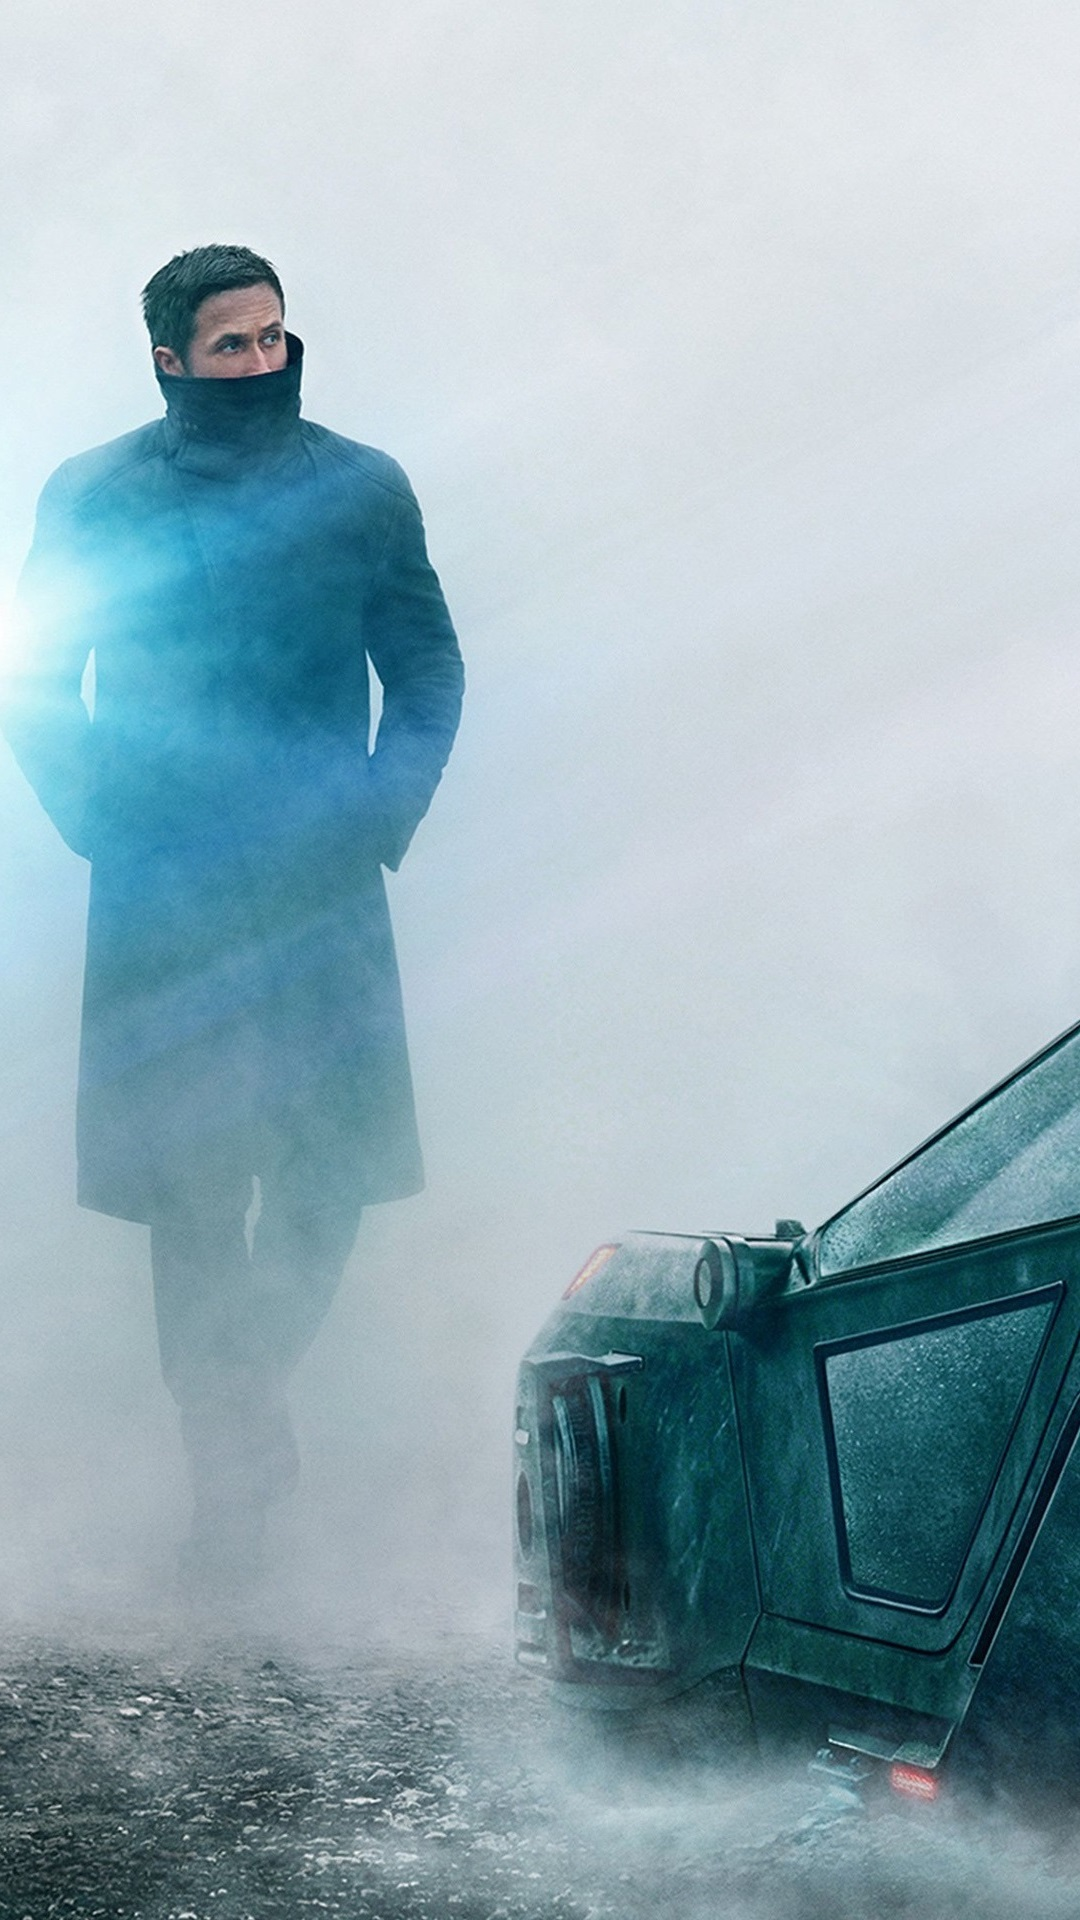 Wallpaper Blade Runner 2049 Hd 2560x1920 Hd Picture Image